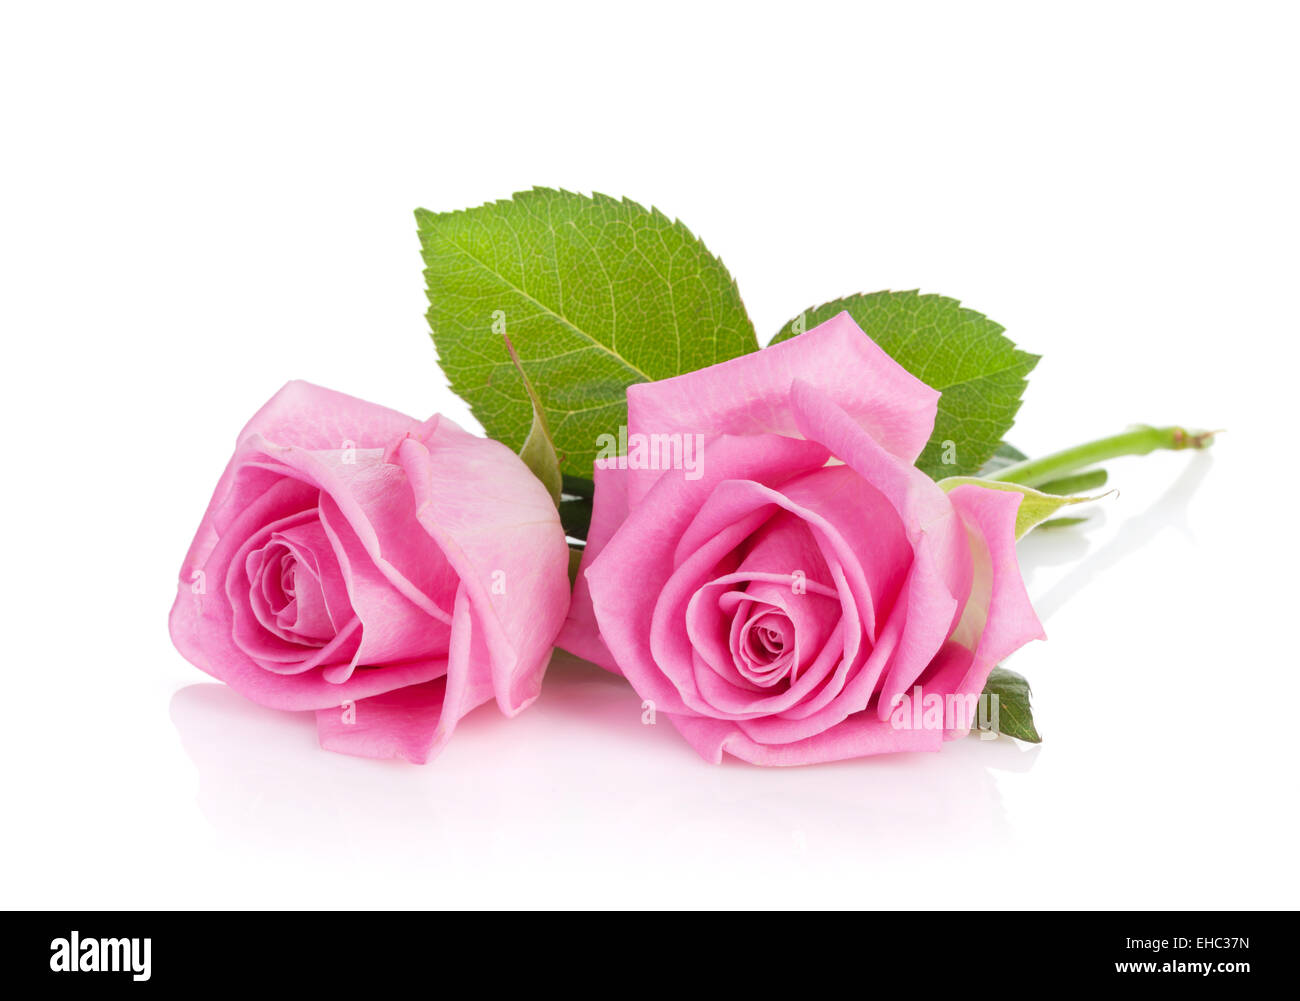 Beautiful Single Red Rose Flower Isolated Royalty Free: Two Pink Rose Flowers. Isolated On White Background Stock